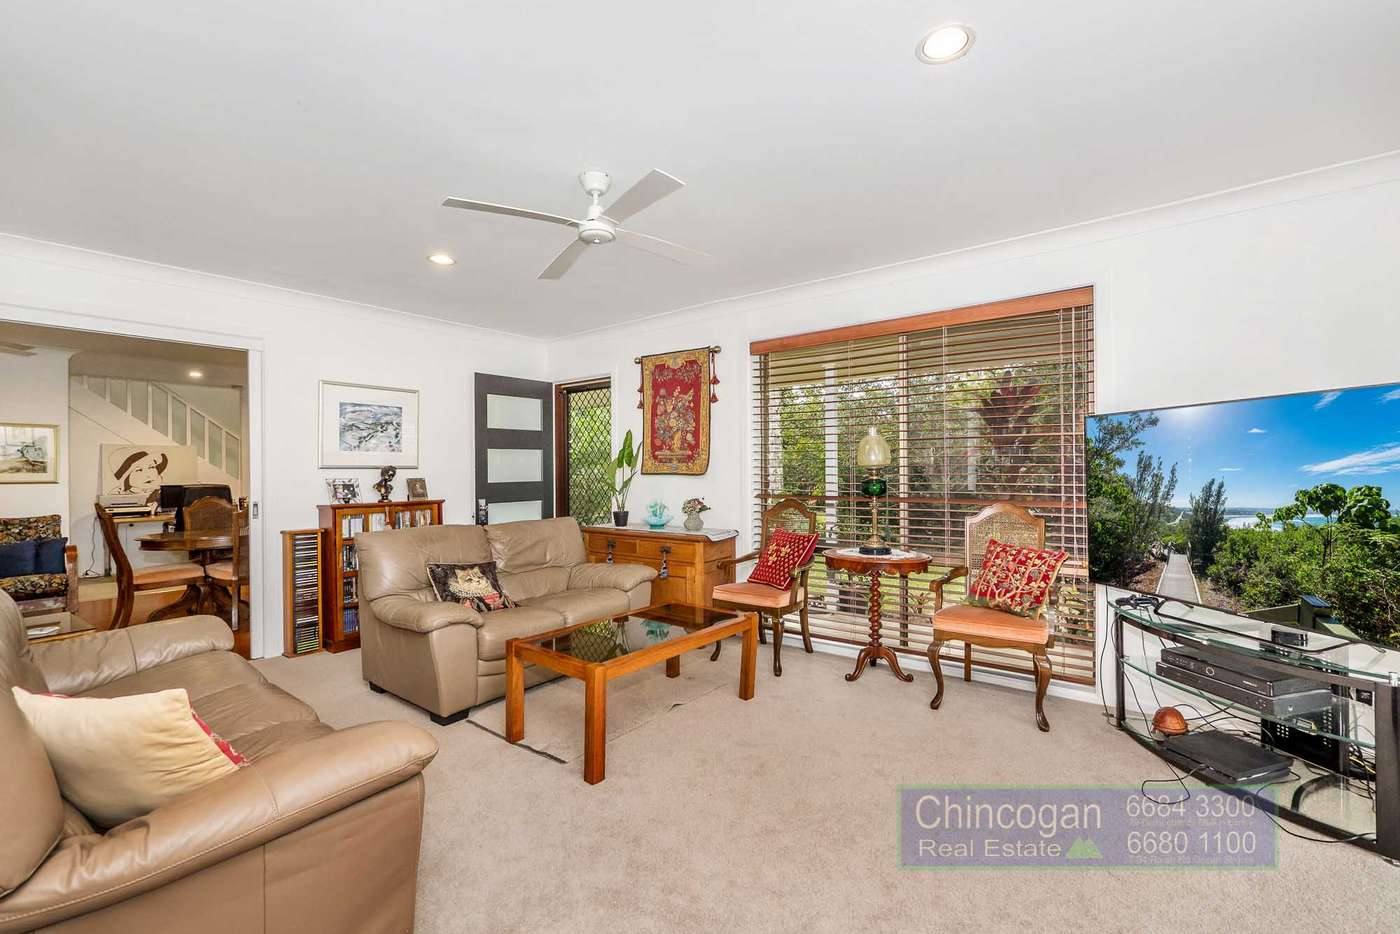 Fifth view of Homely house listing, 2 Yamble Drive, Ocean Shores NSW 2483